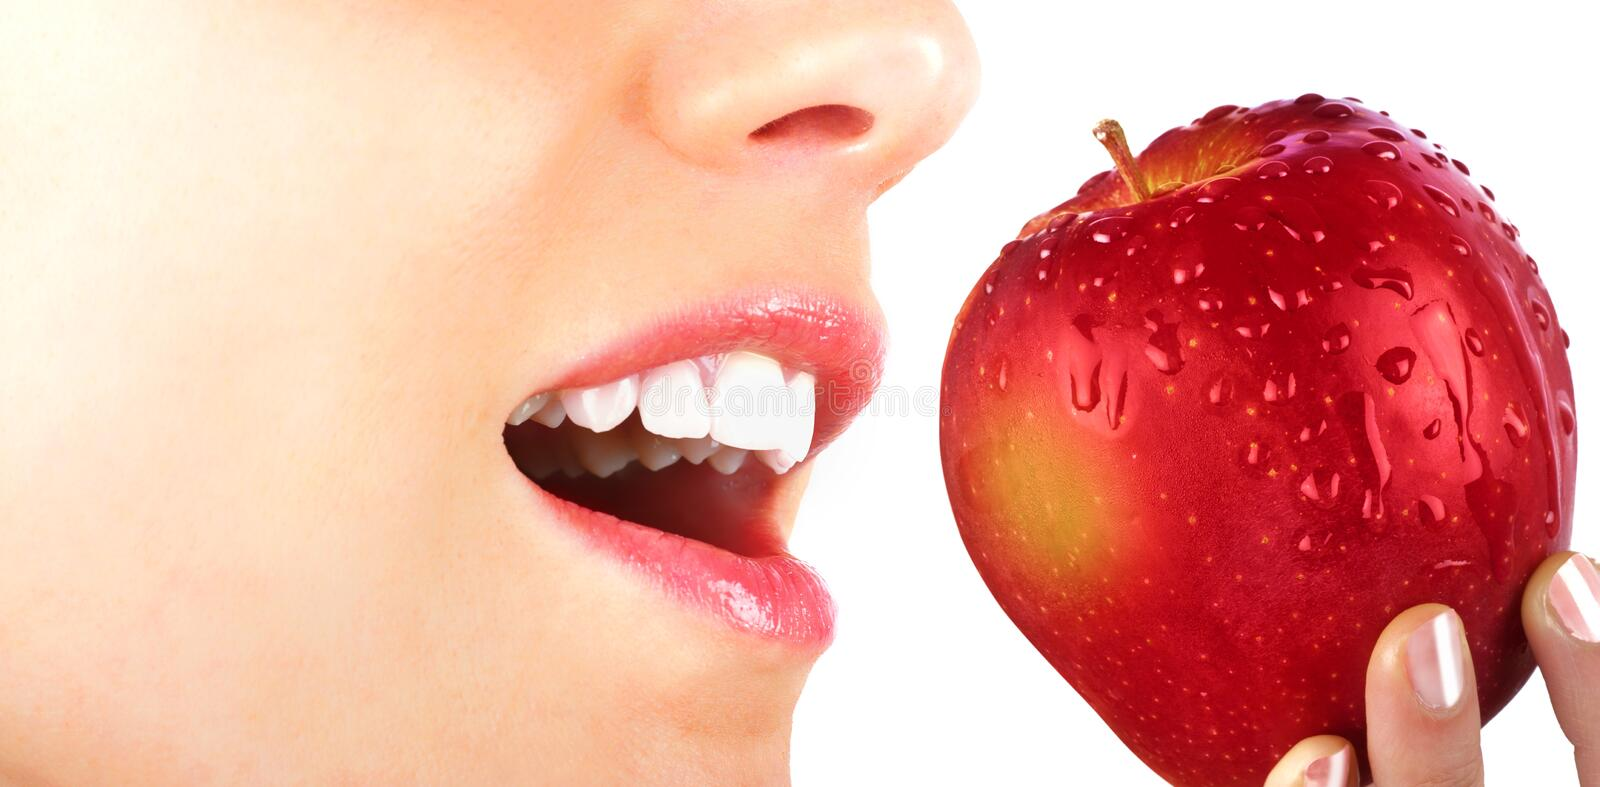 Download Eating an apple stock photo. Image of person, eating - 36783034